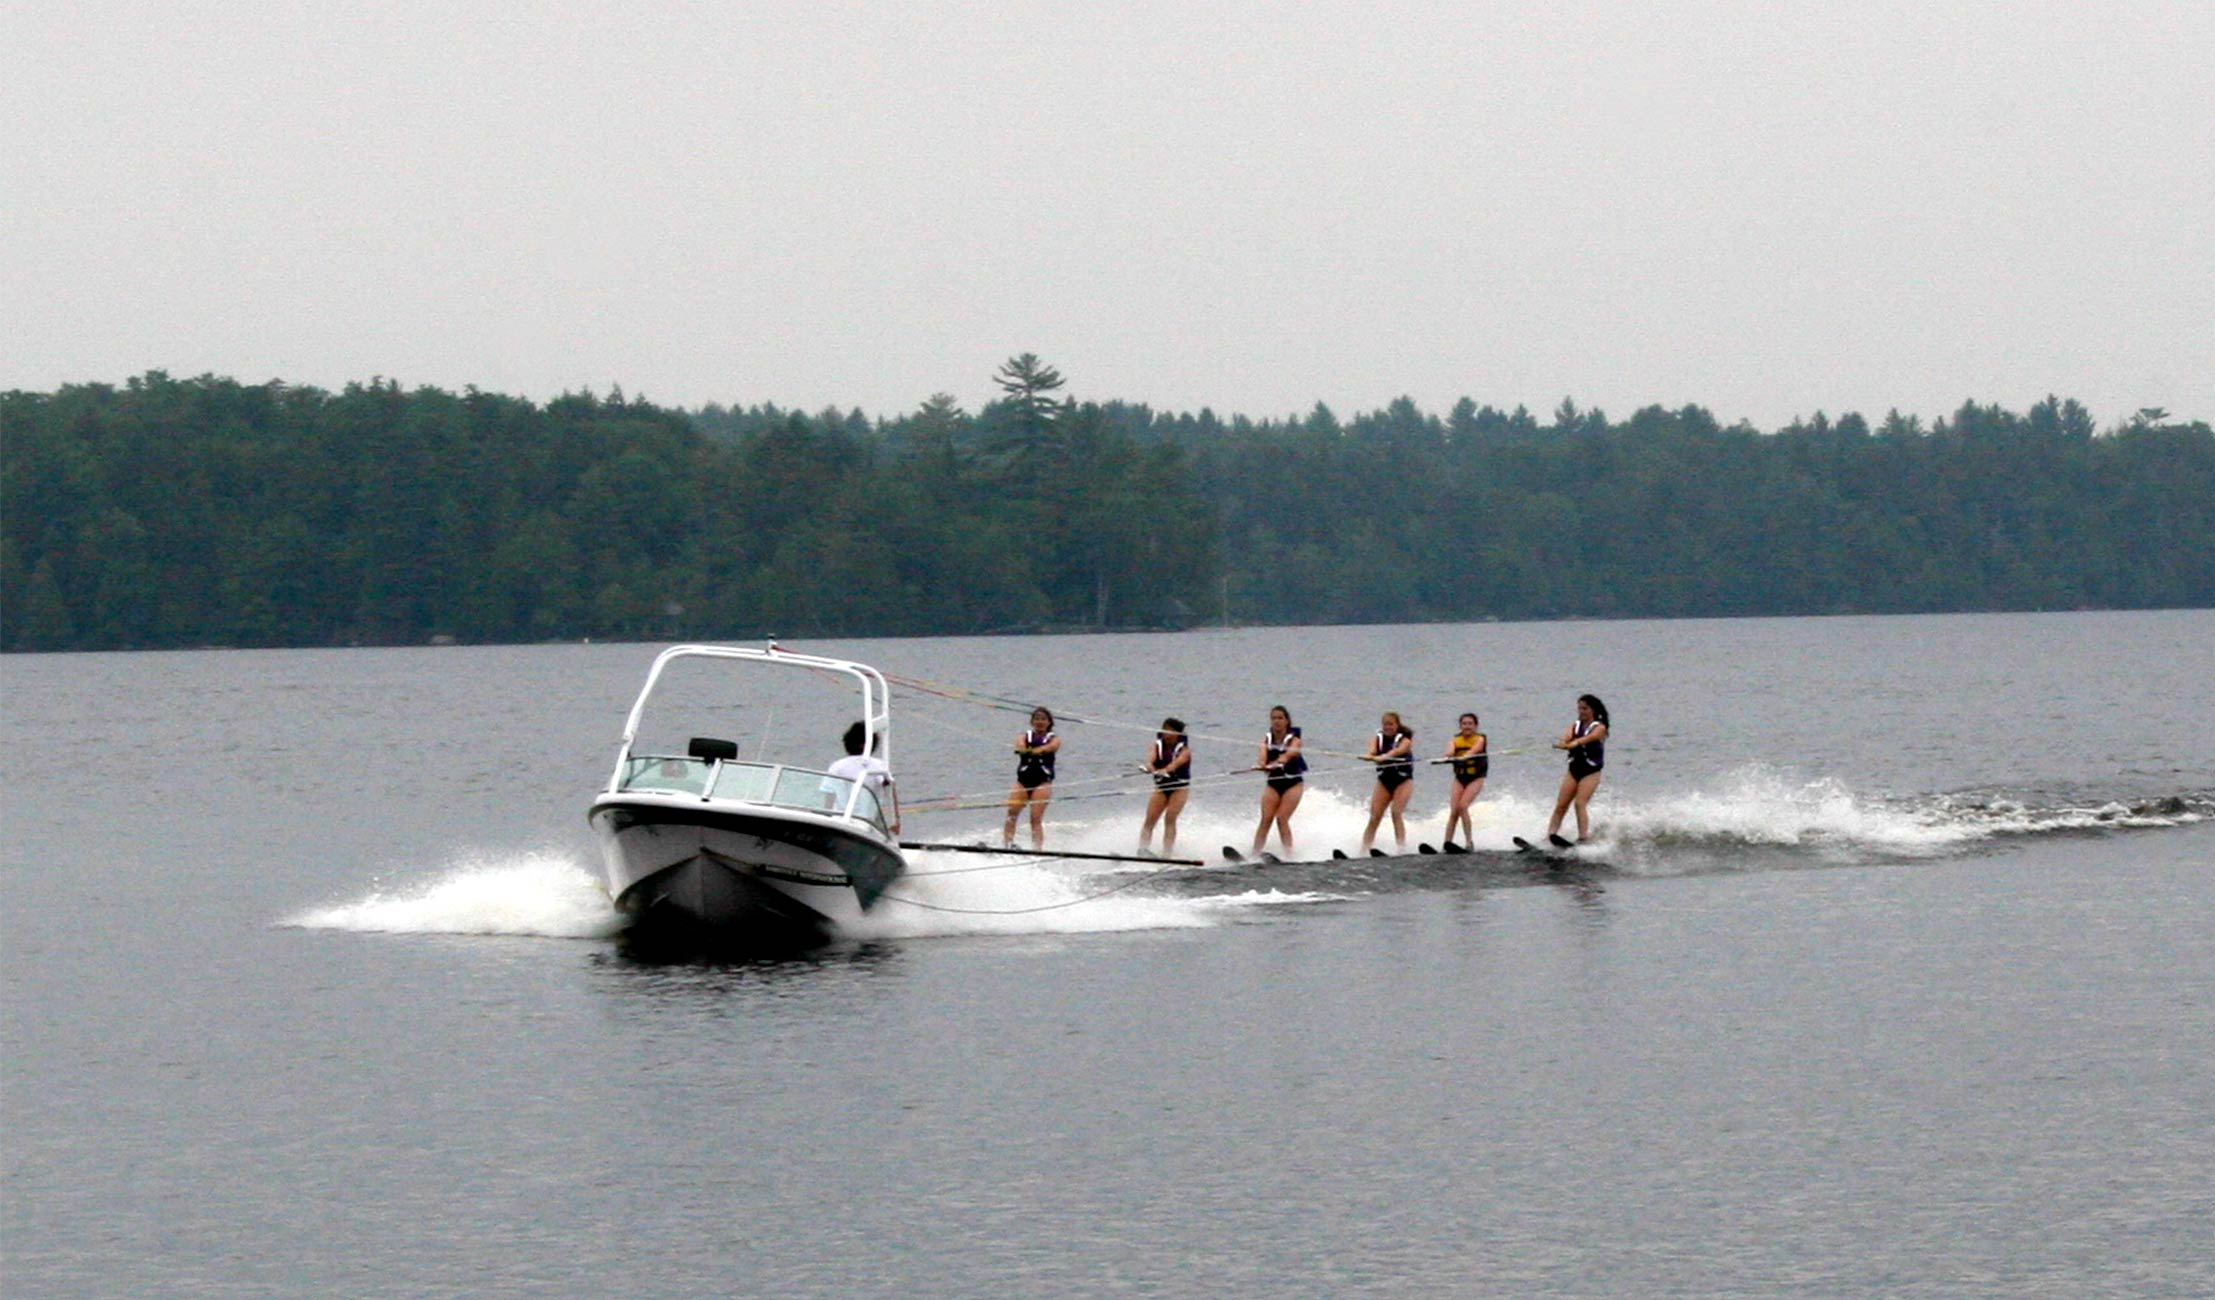 raquette lake single catholic girls The camp calendar is spiced up by special days and events including cookouts and cross- camp socials with raquette lake girls camp view our daily schedule program structure.